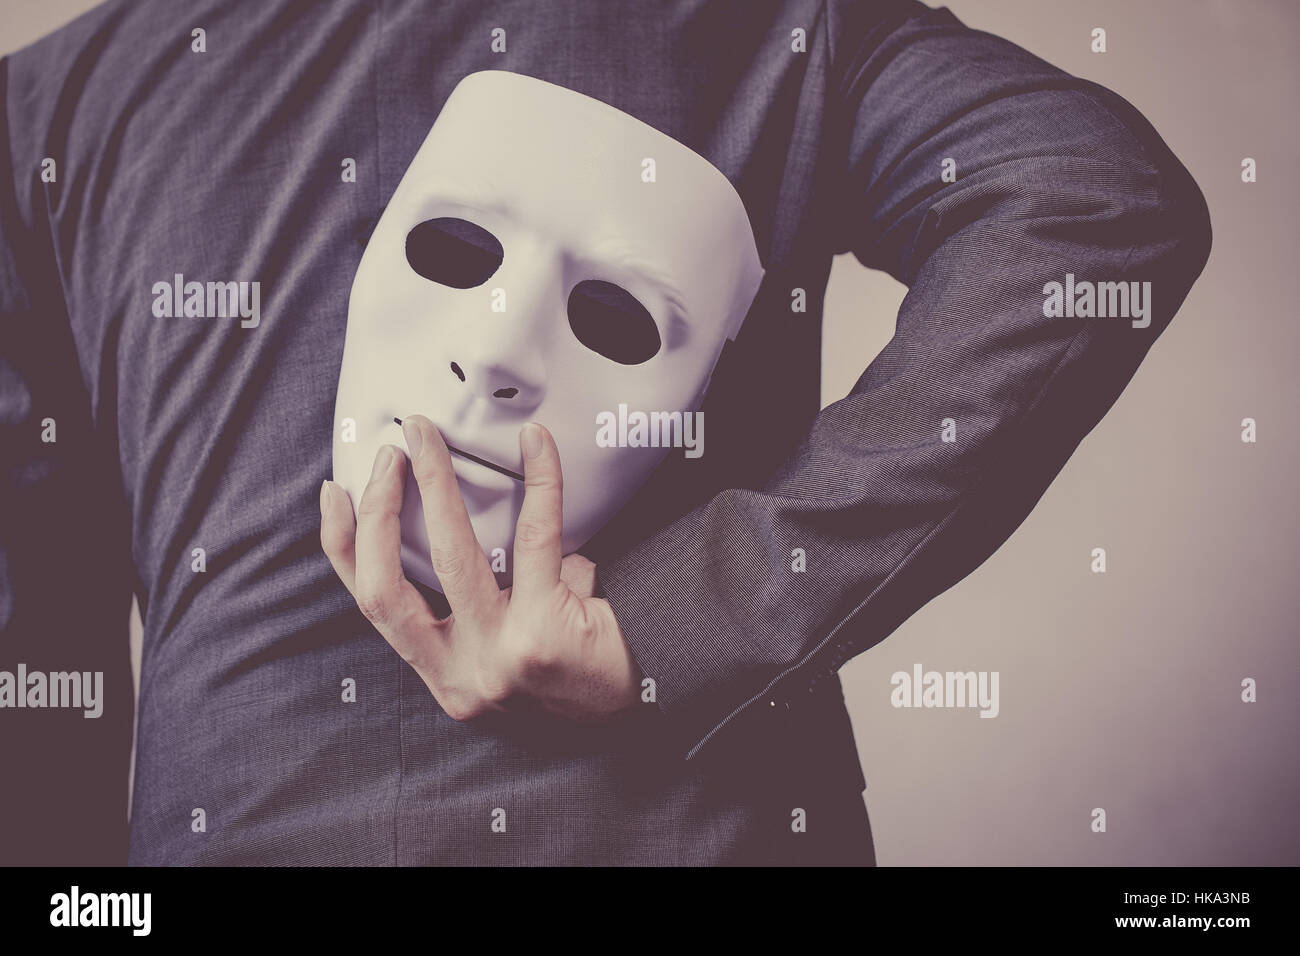 Business man carrying white mask to his body indicating Business fraud and faking business partnership. - Stock Image